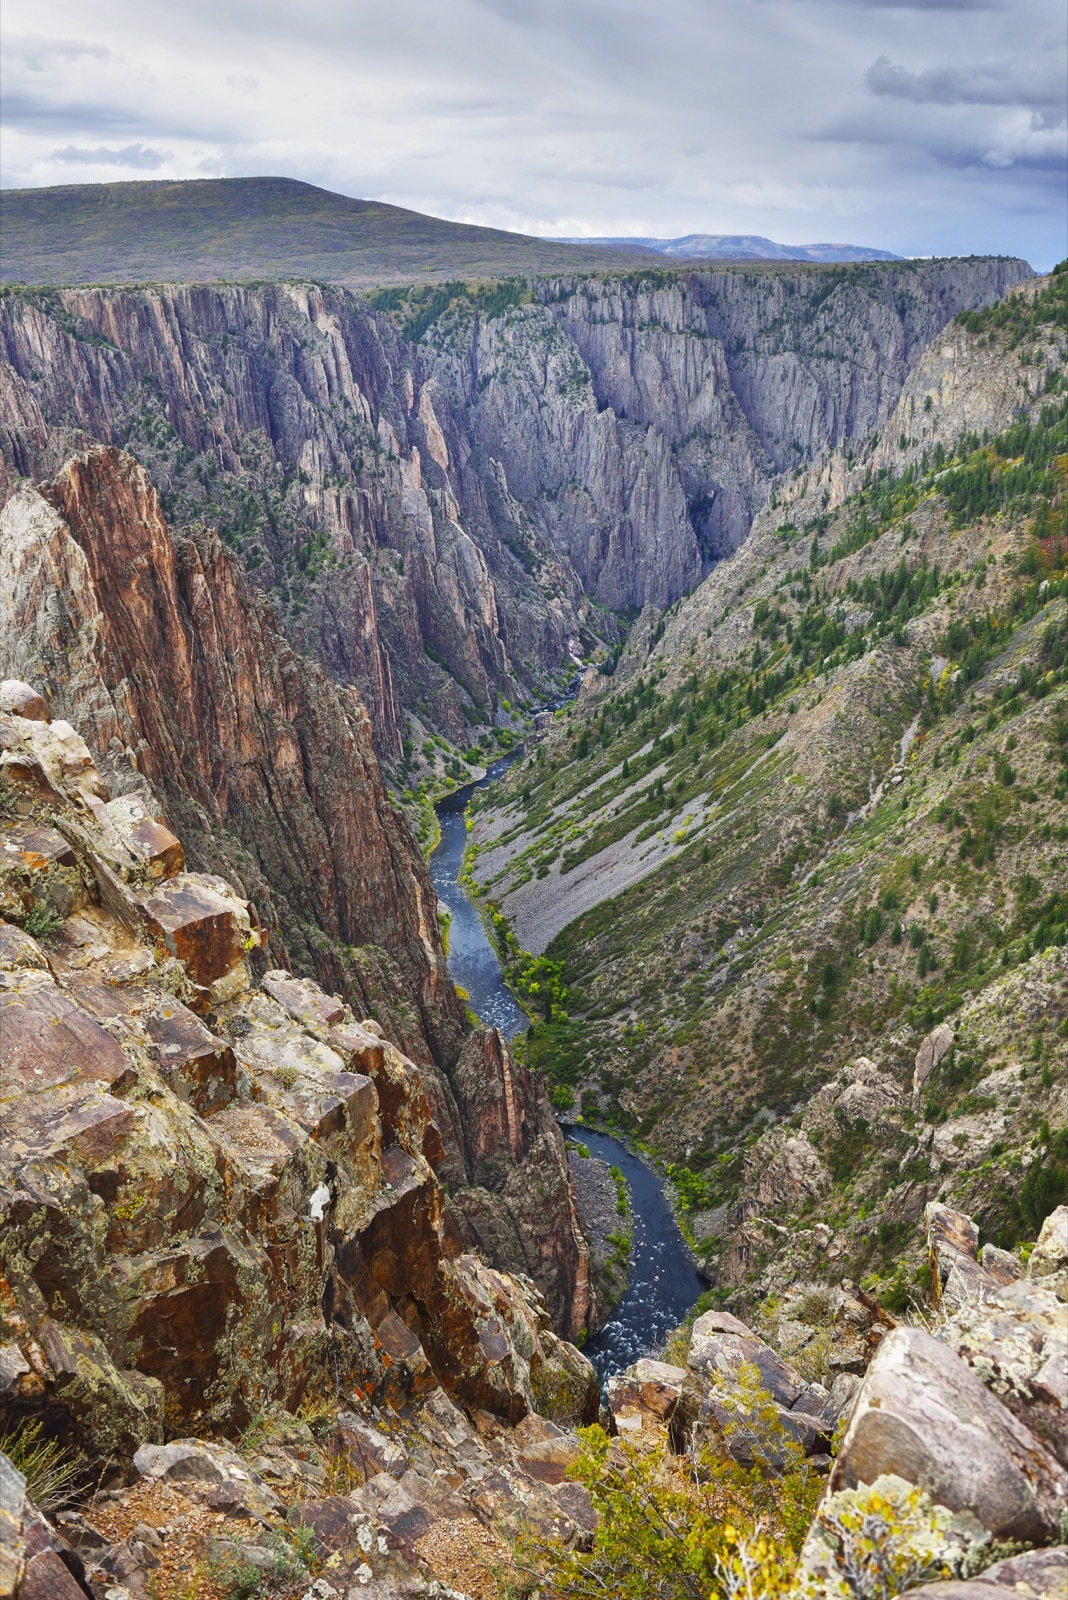 black-canyon-of-the-gunnison-national-park.jpg?mtime=20200115141826#asset:107687